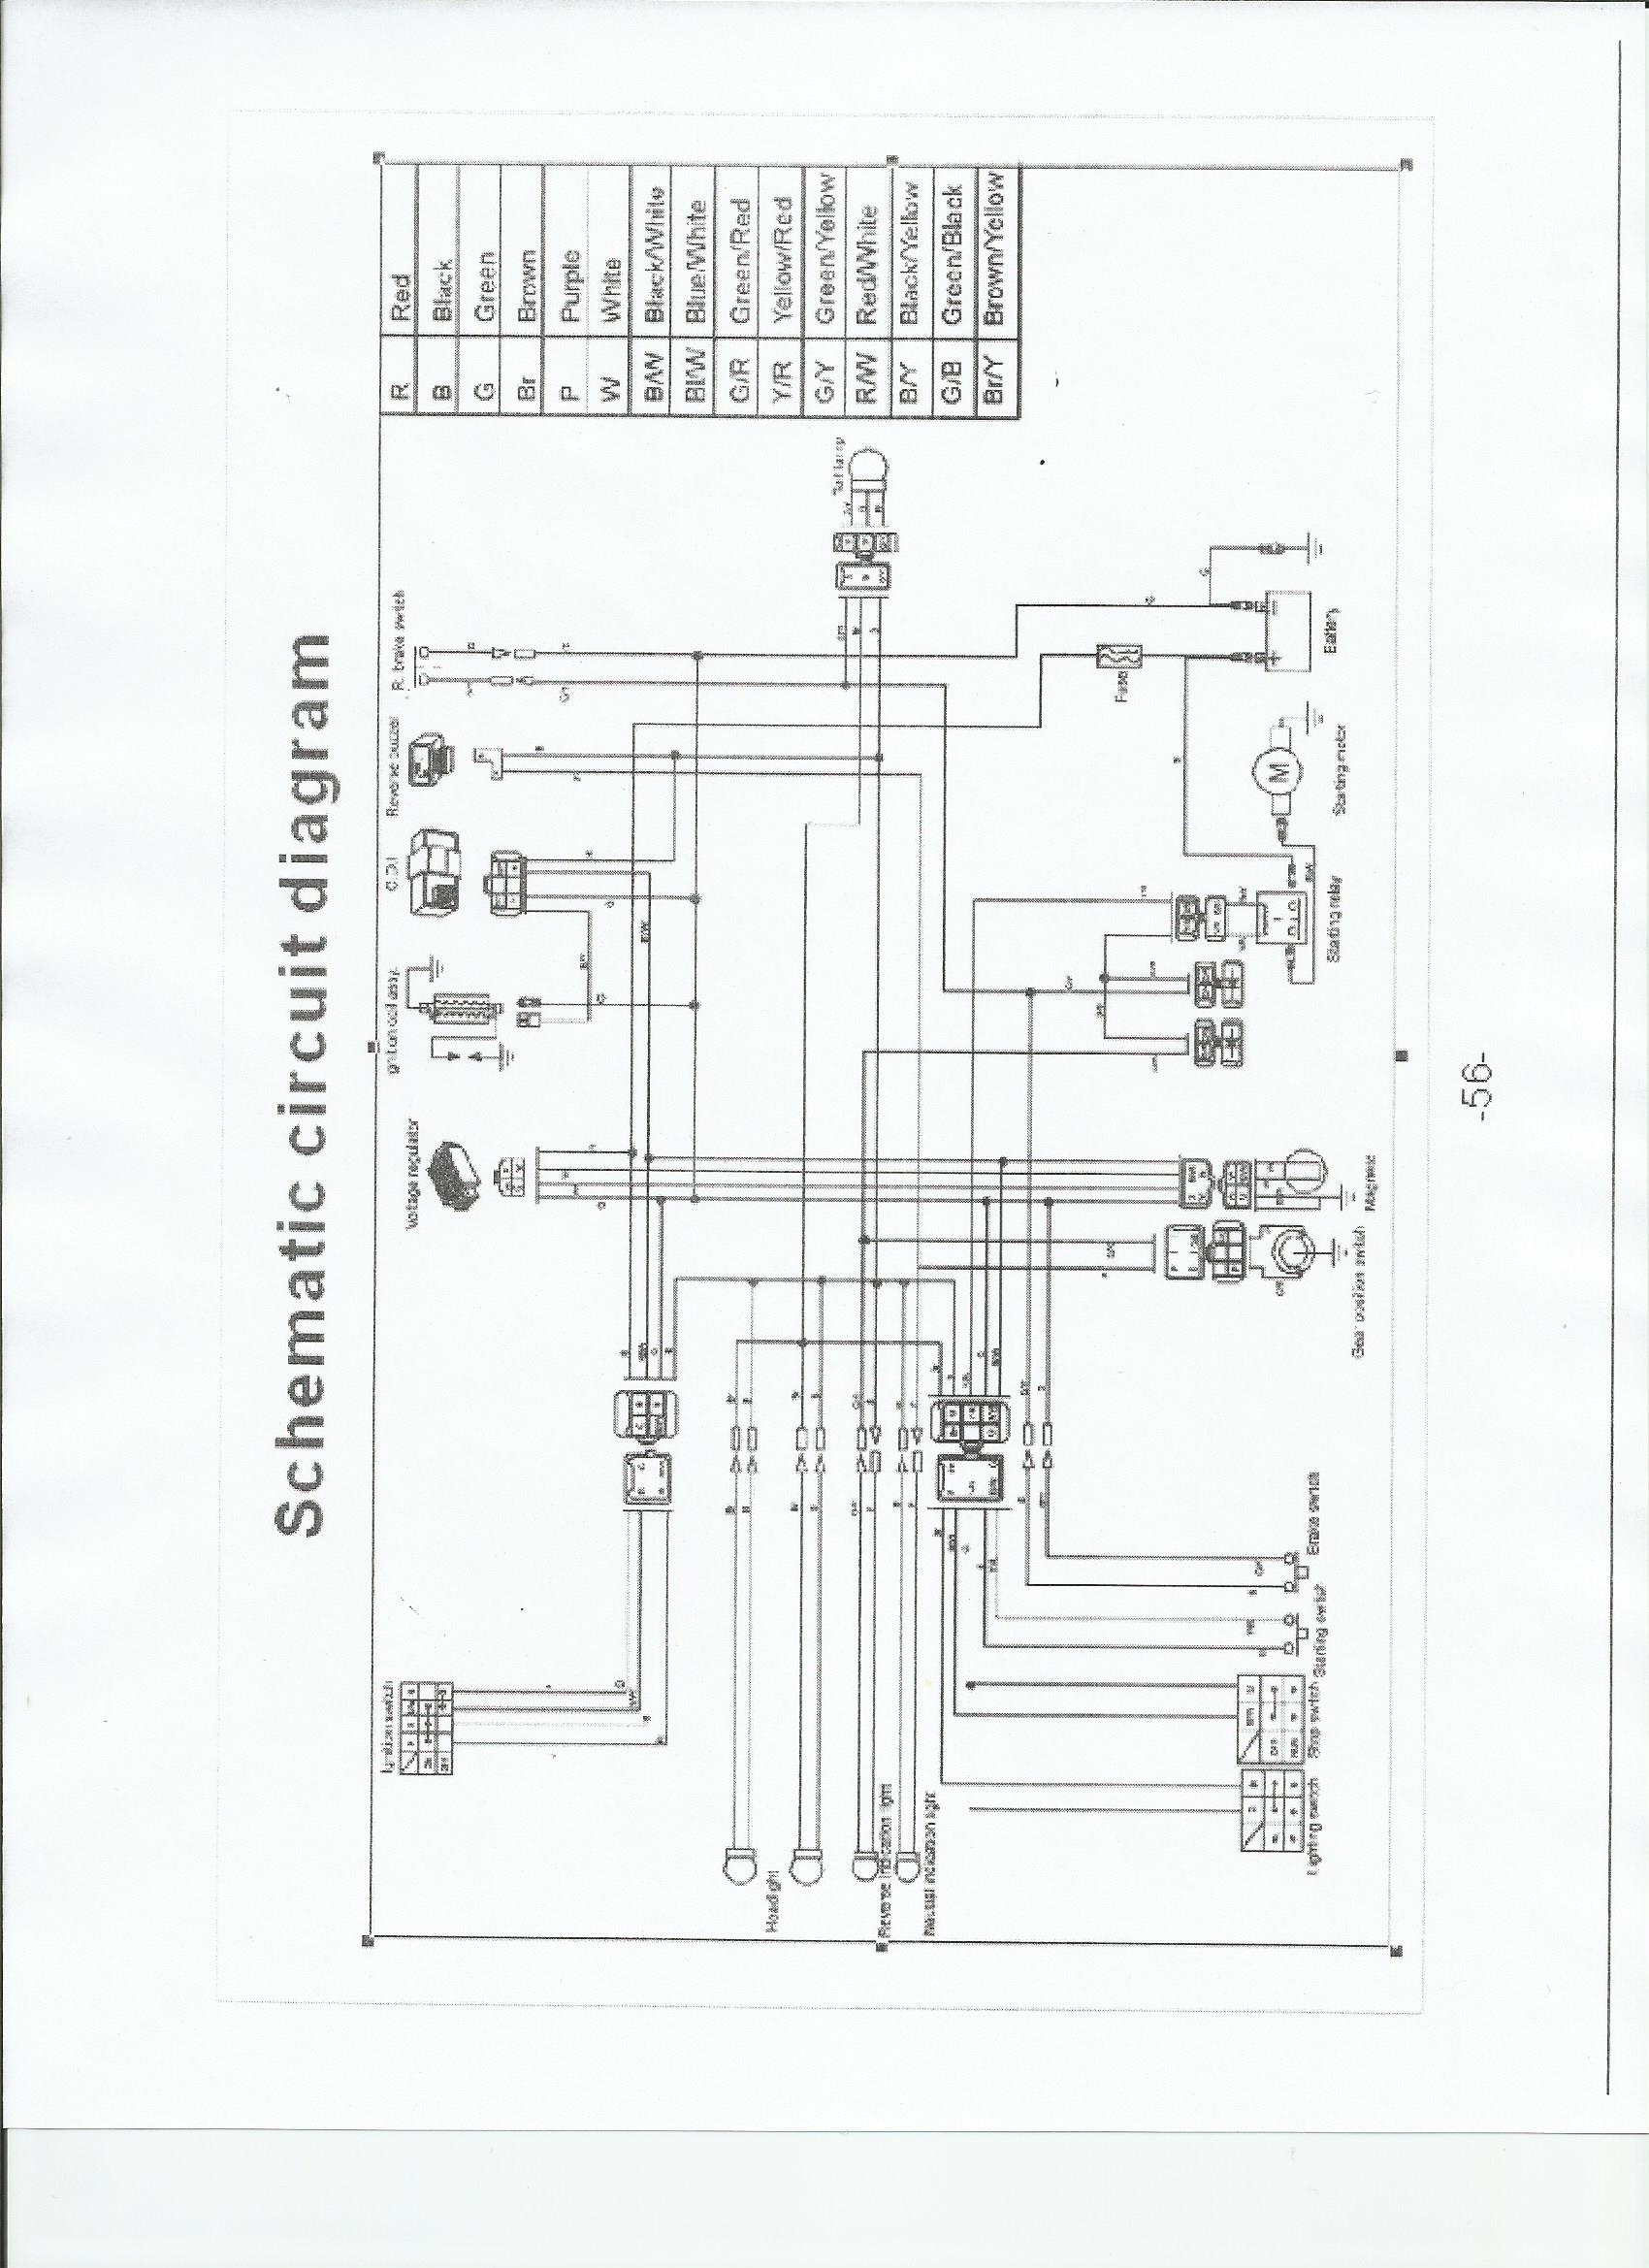 medium resolution of taotao mini and youth atv wiring schematic familygokarts support atv630 wiring diagram atv wiring diagram